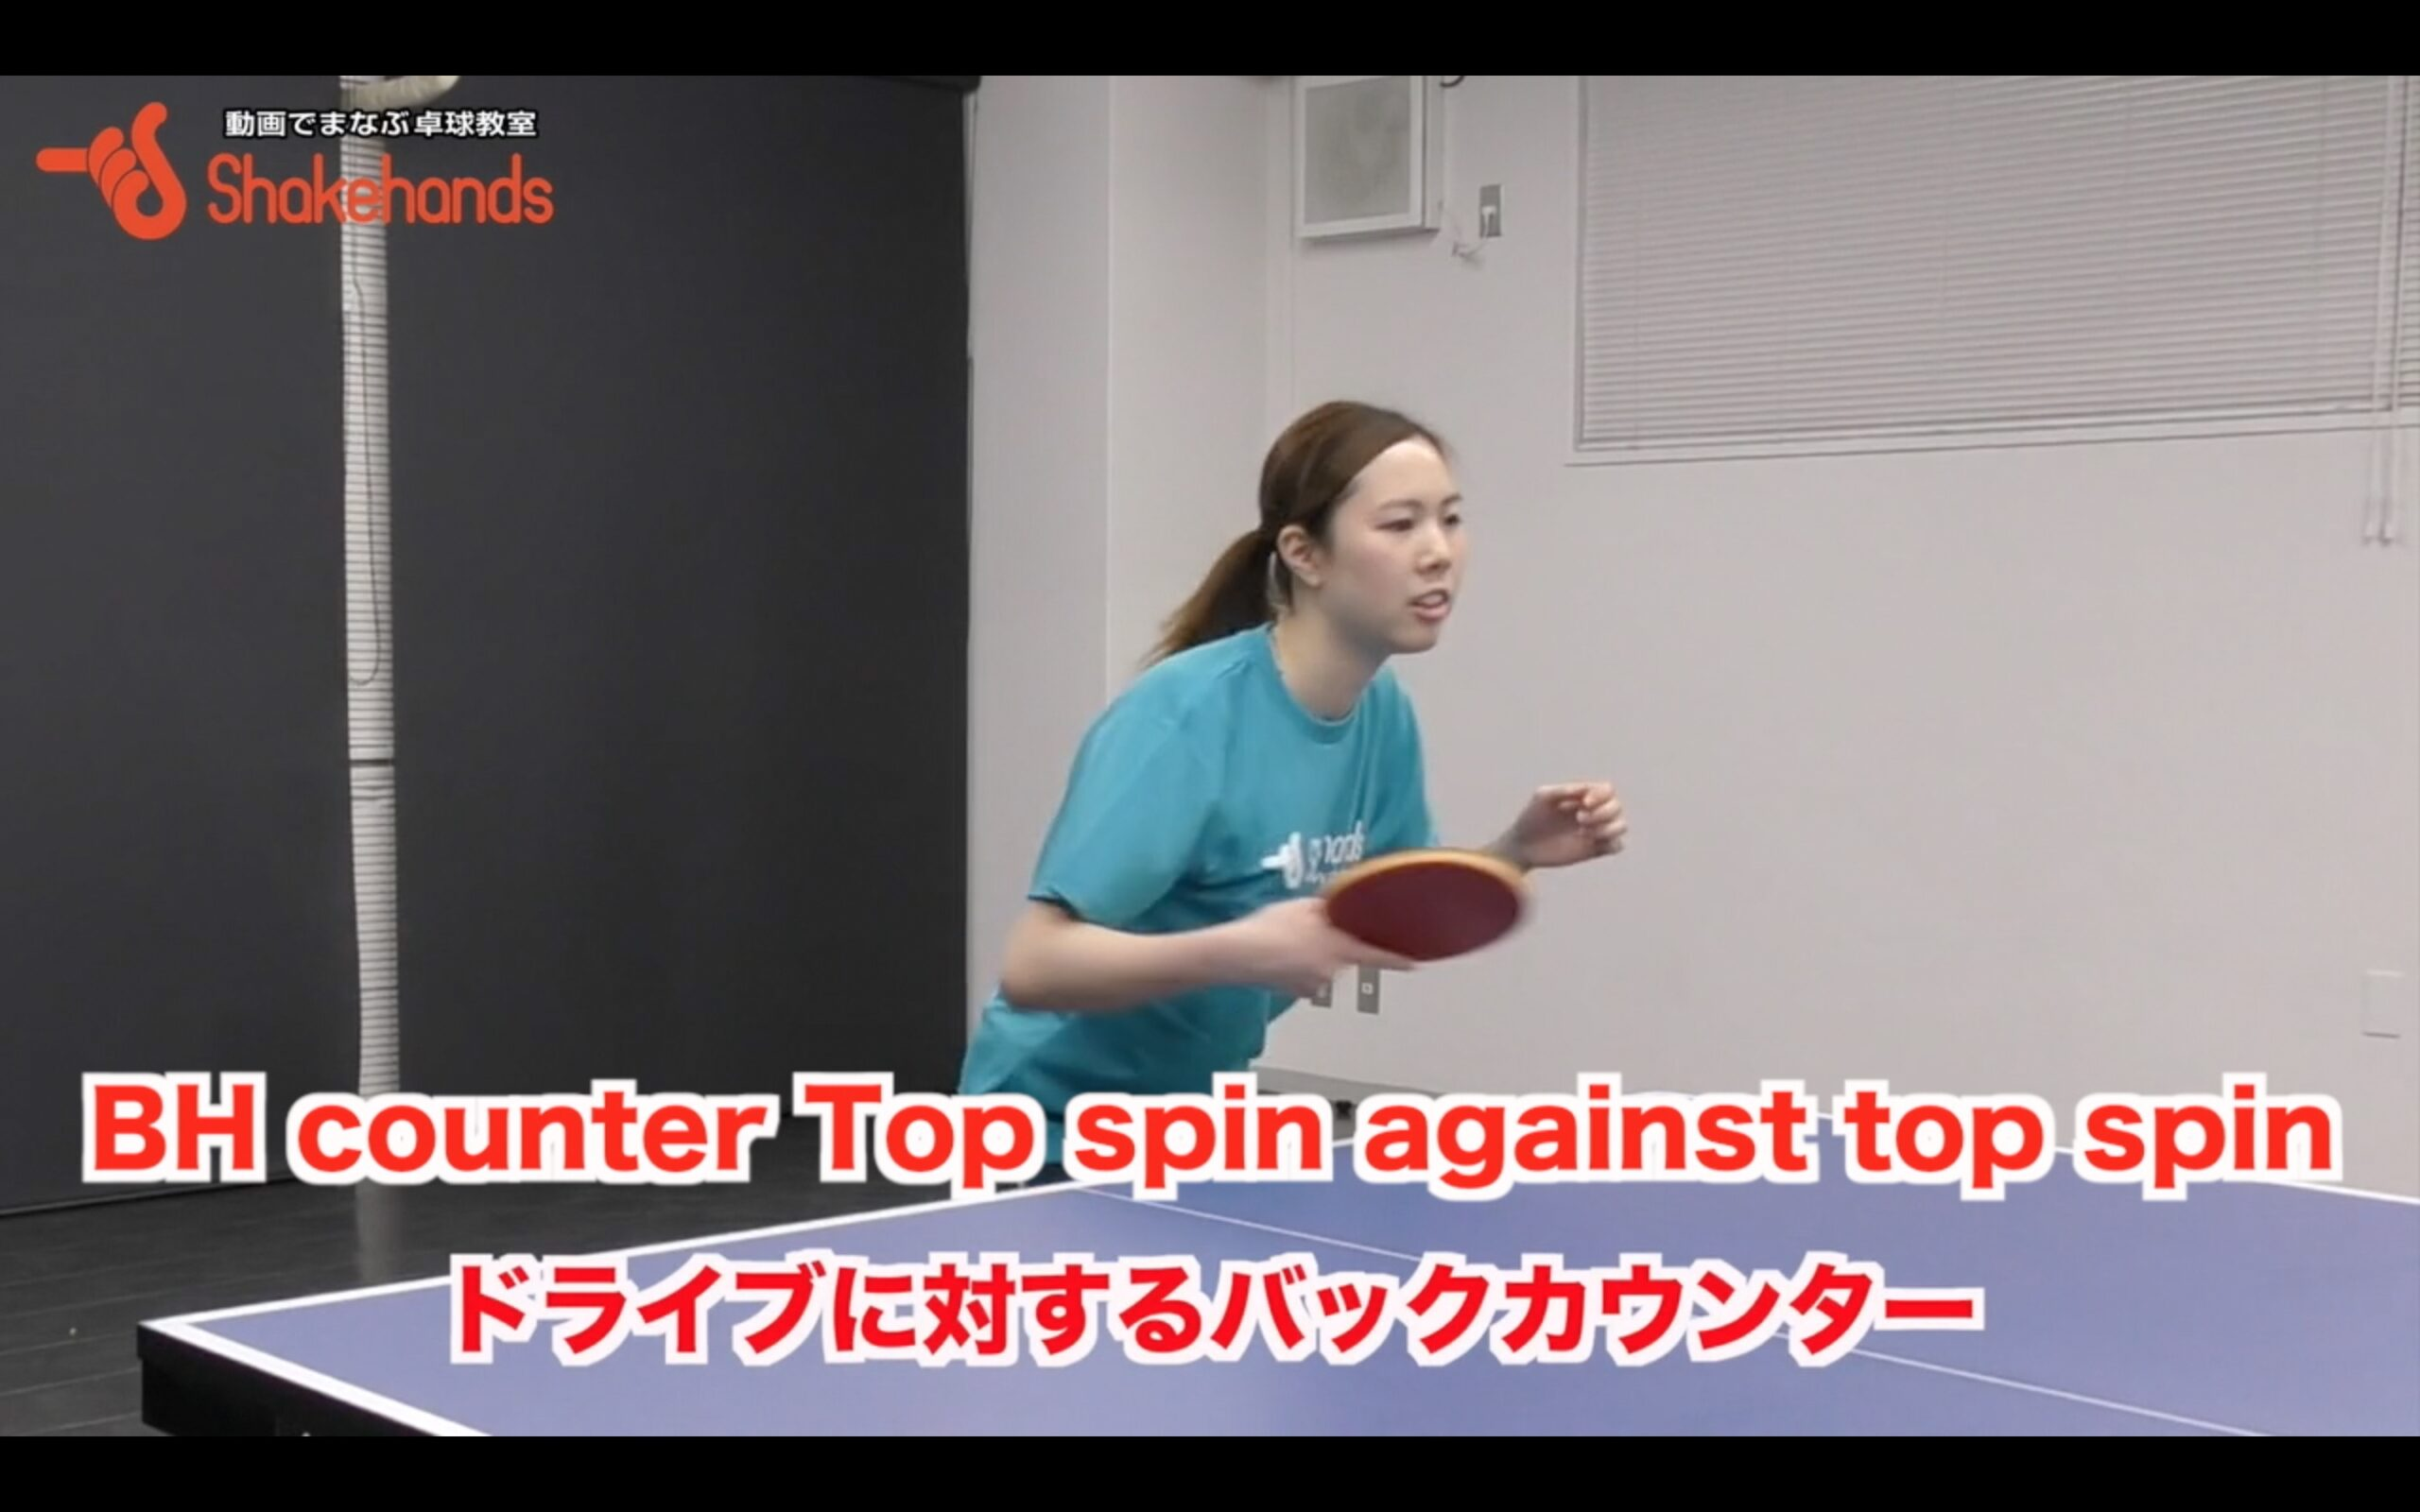 BH counter top spin against top spin